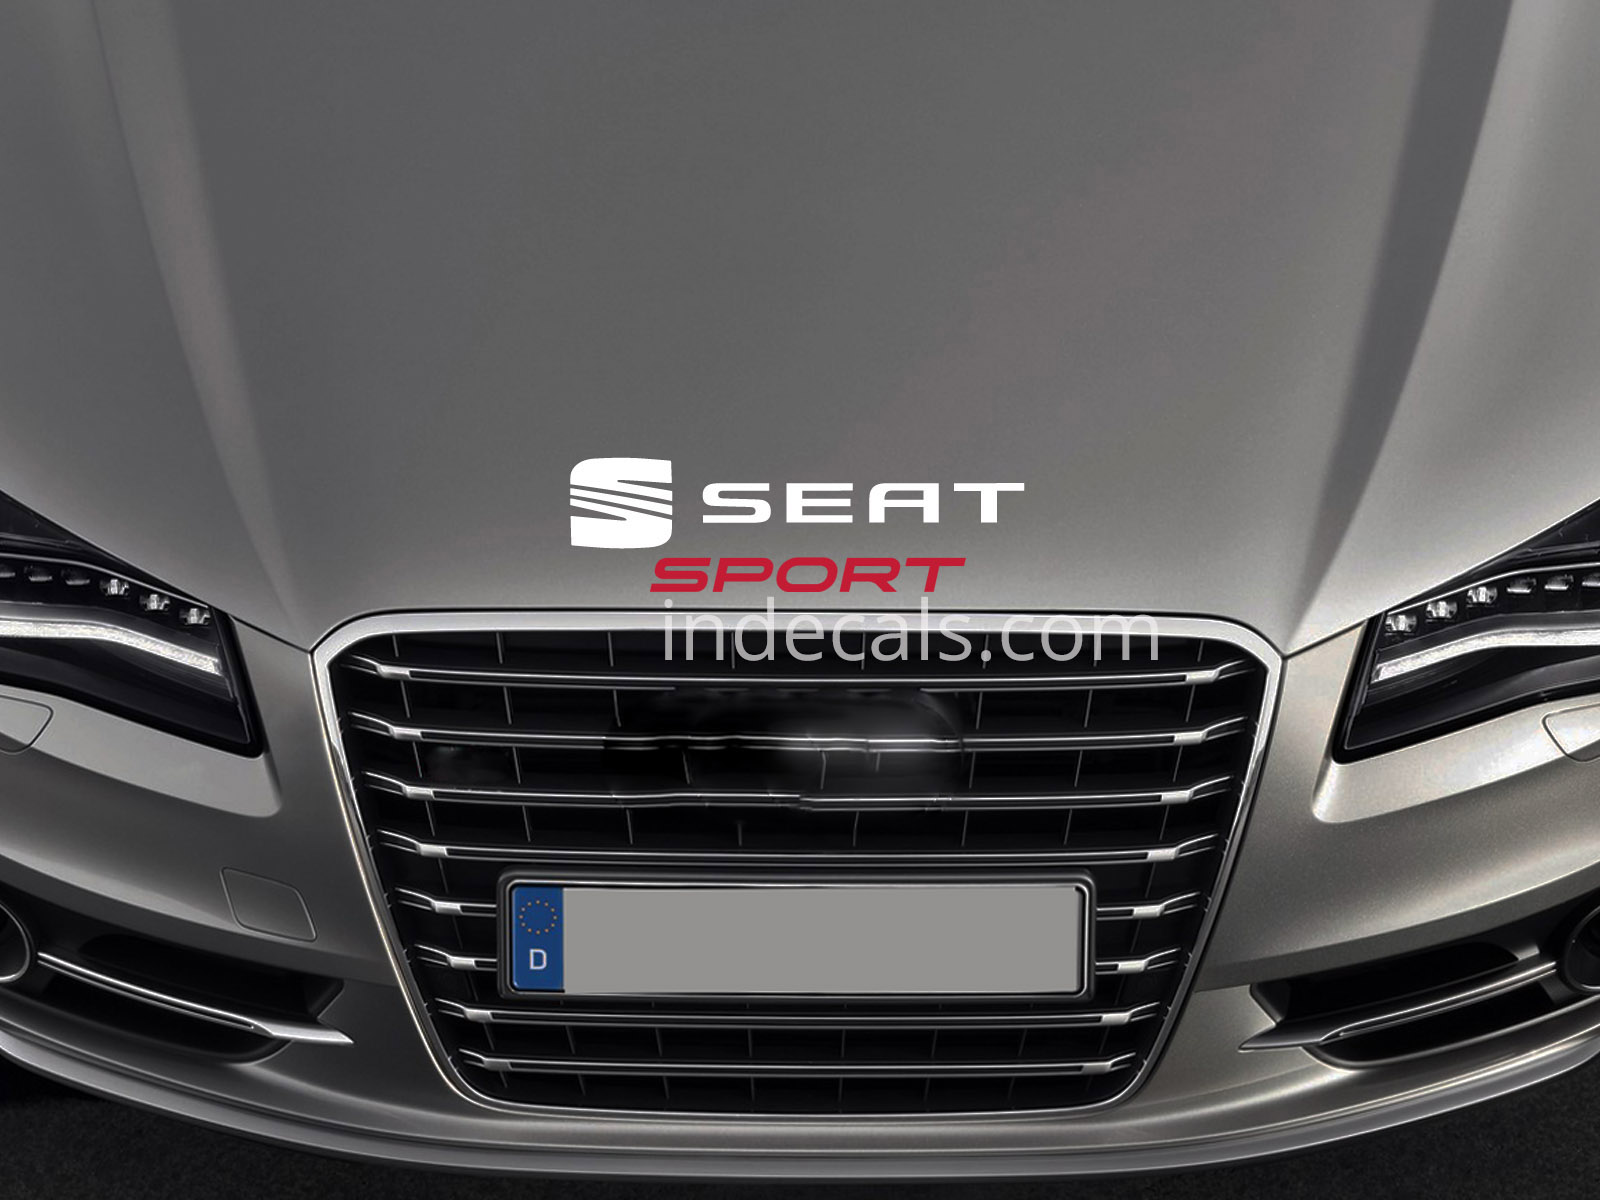 1 x Seat Sport Sticker for Bonnet - White & Red